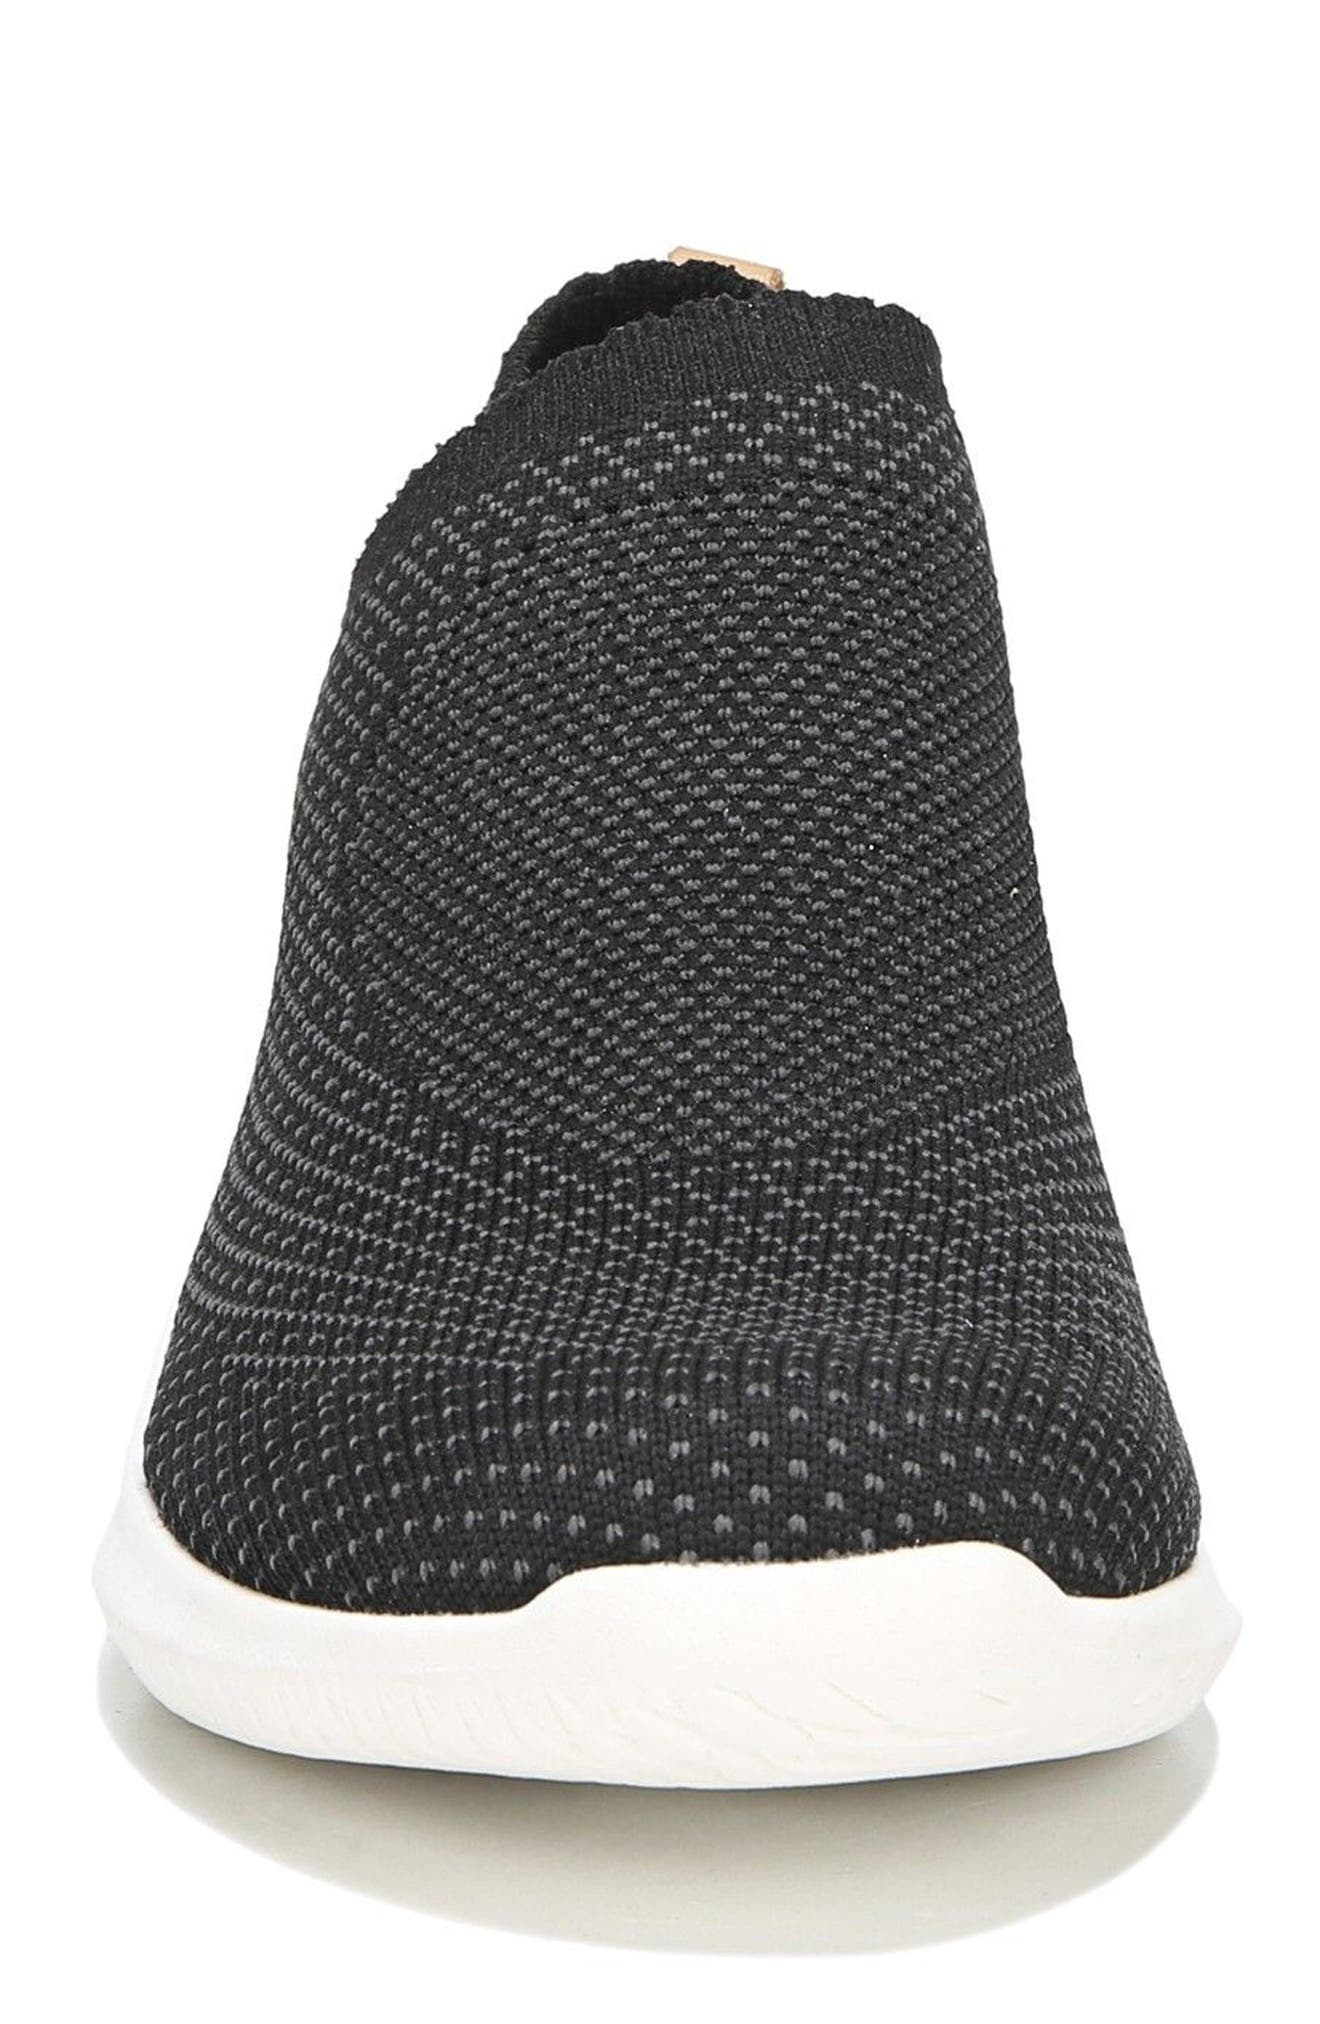 Fierce Knit Slip-On Sneaker,                             Alternate thumbnail 4, color,                             Black Knit Fabric